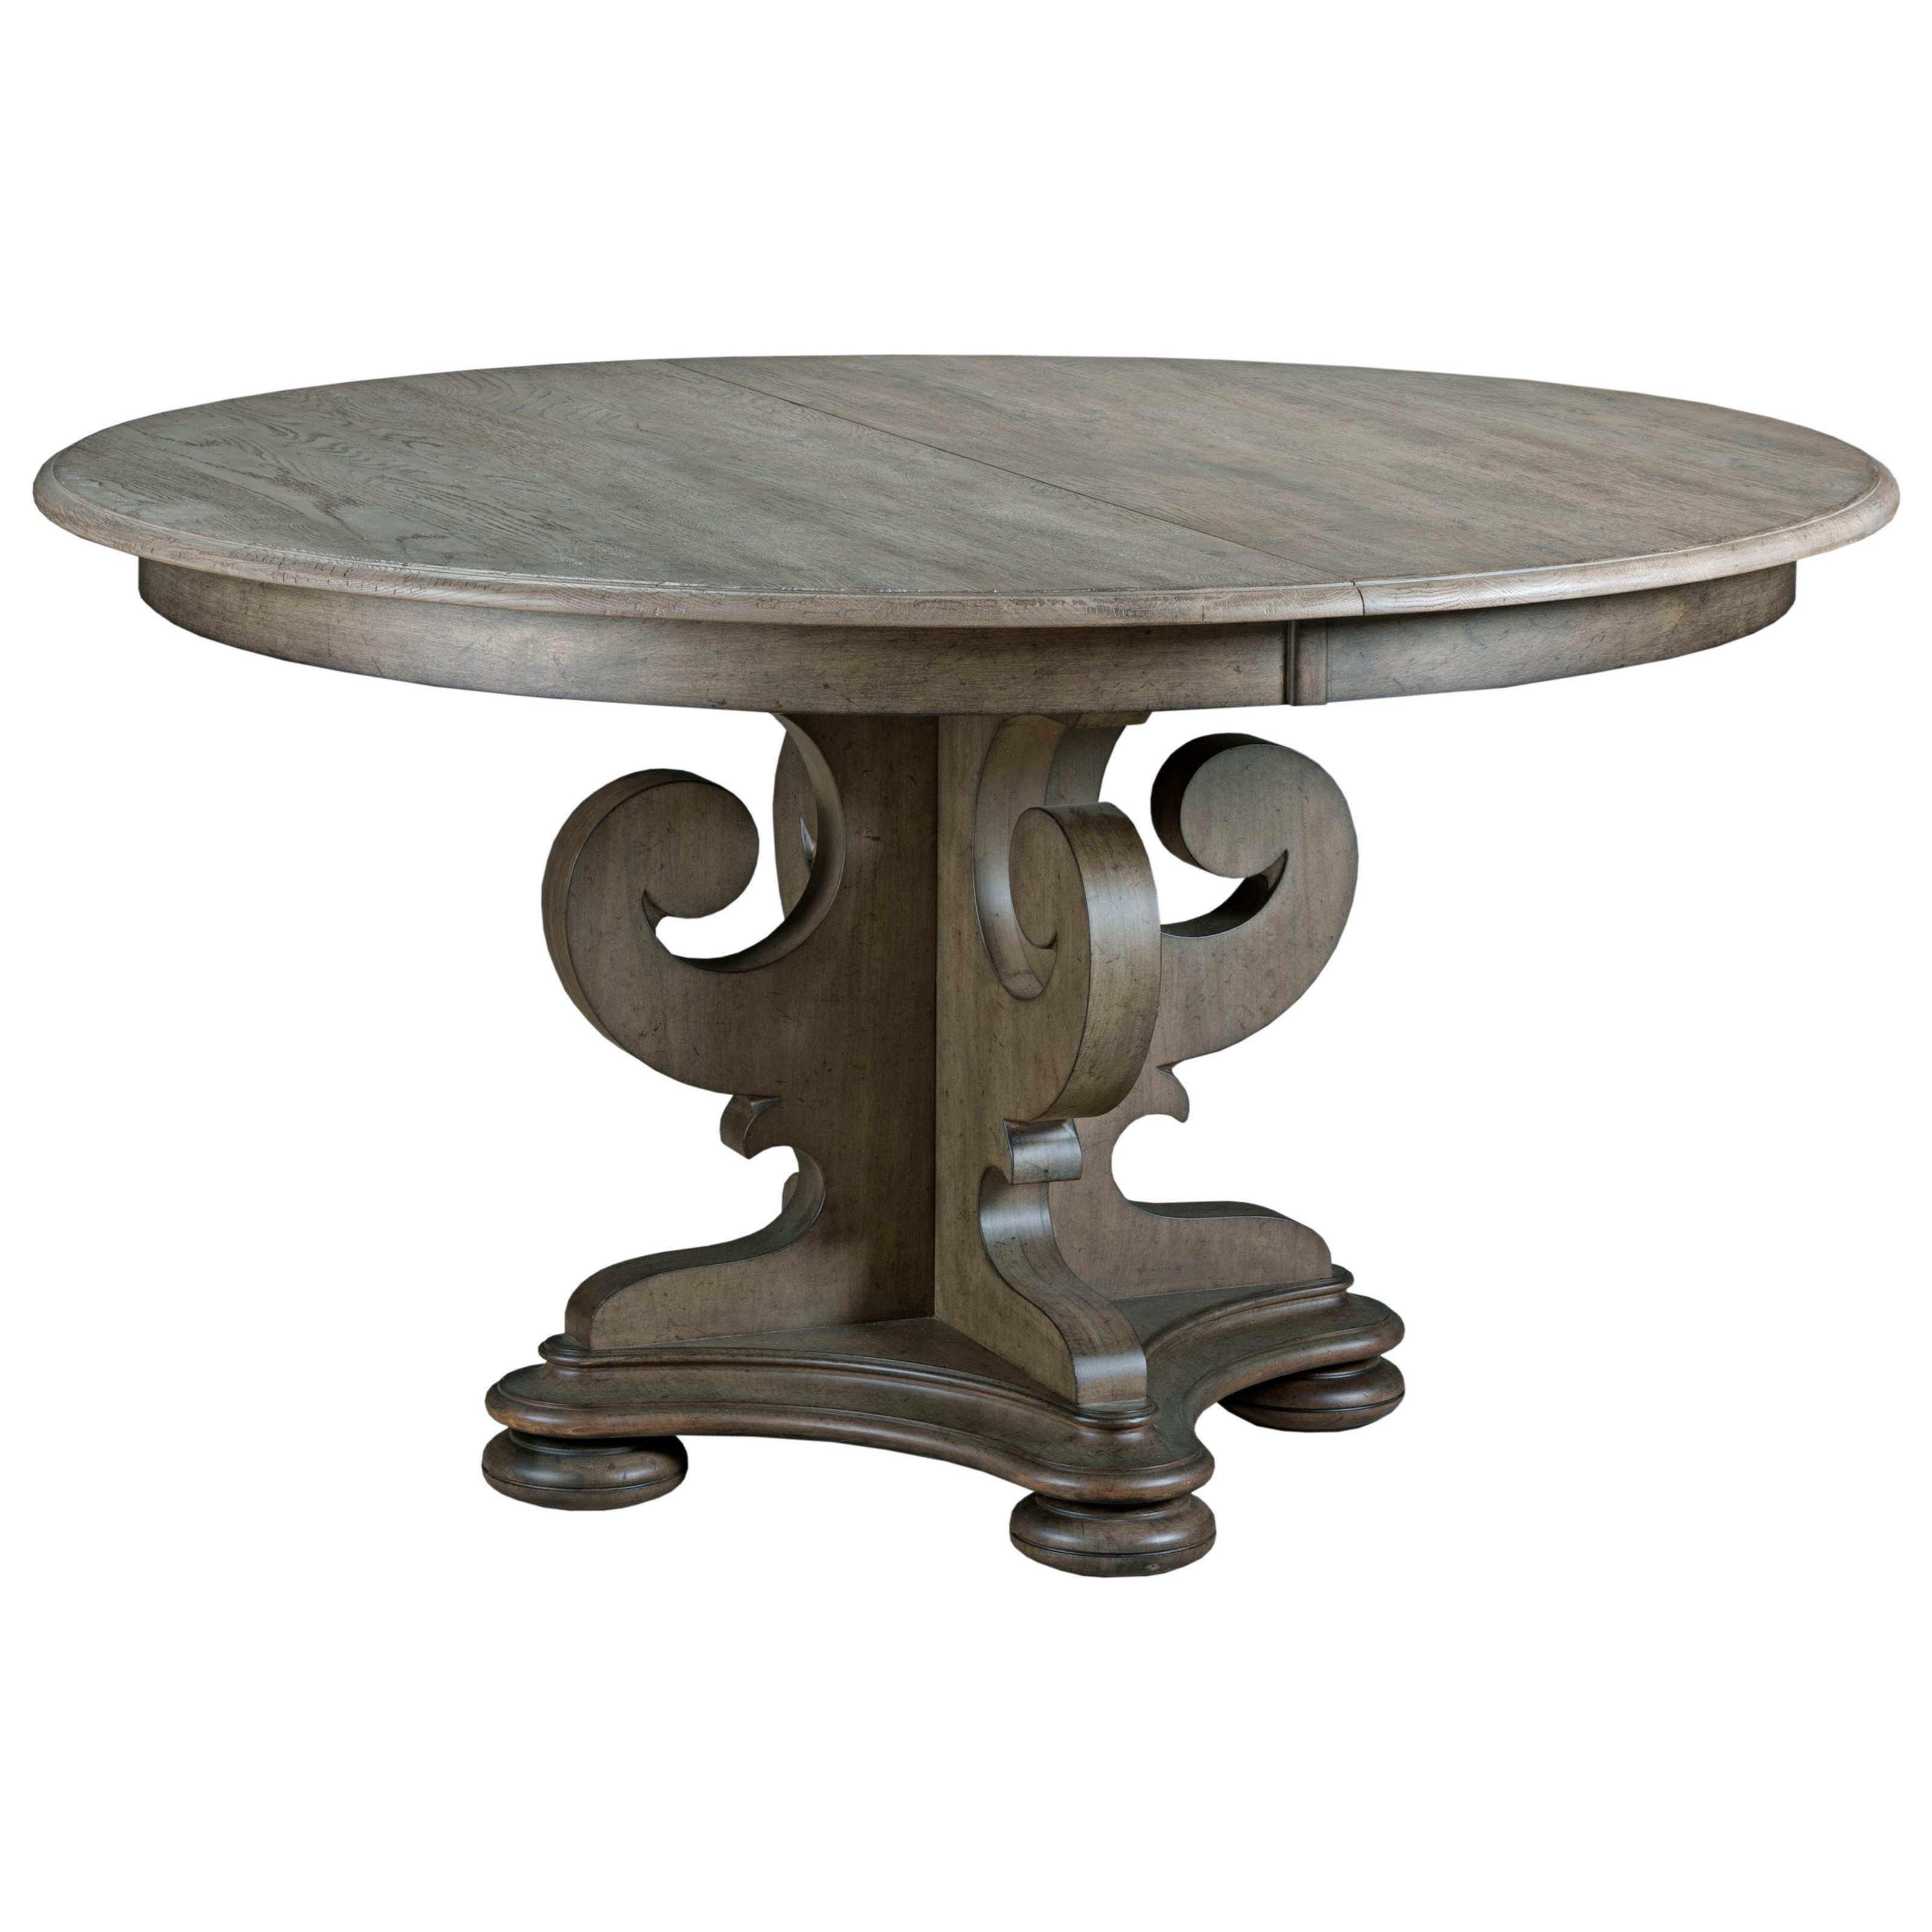 Greyson Grant Round Pedestal Dining Table by Kincaid Furniture at Johnny Janosik